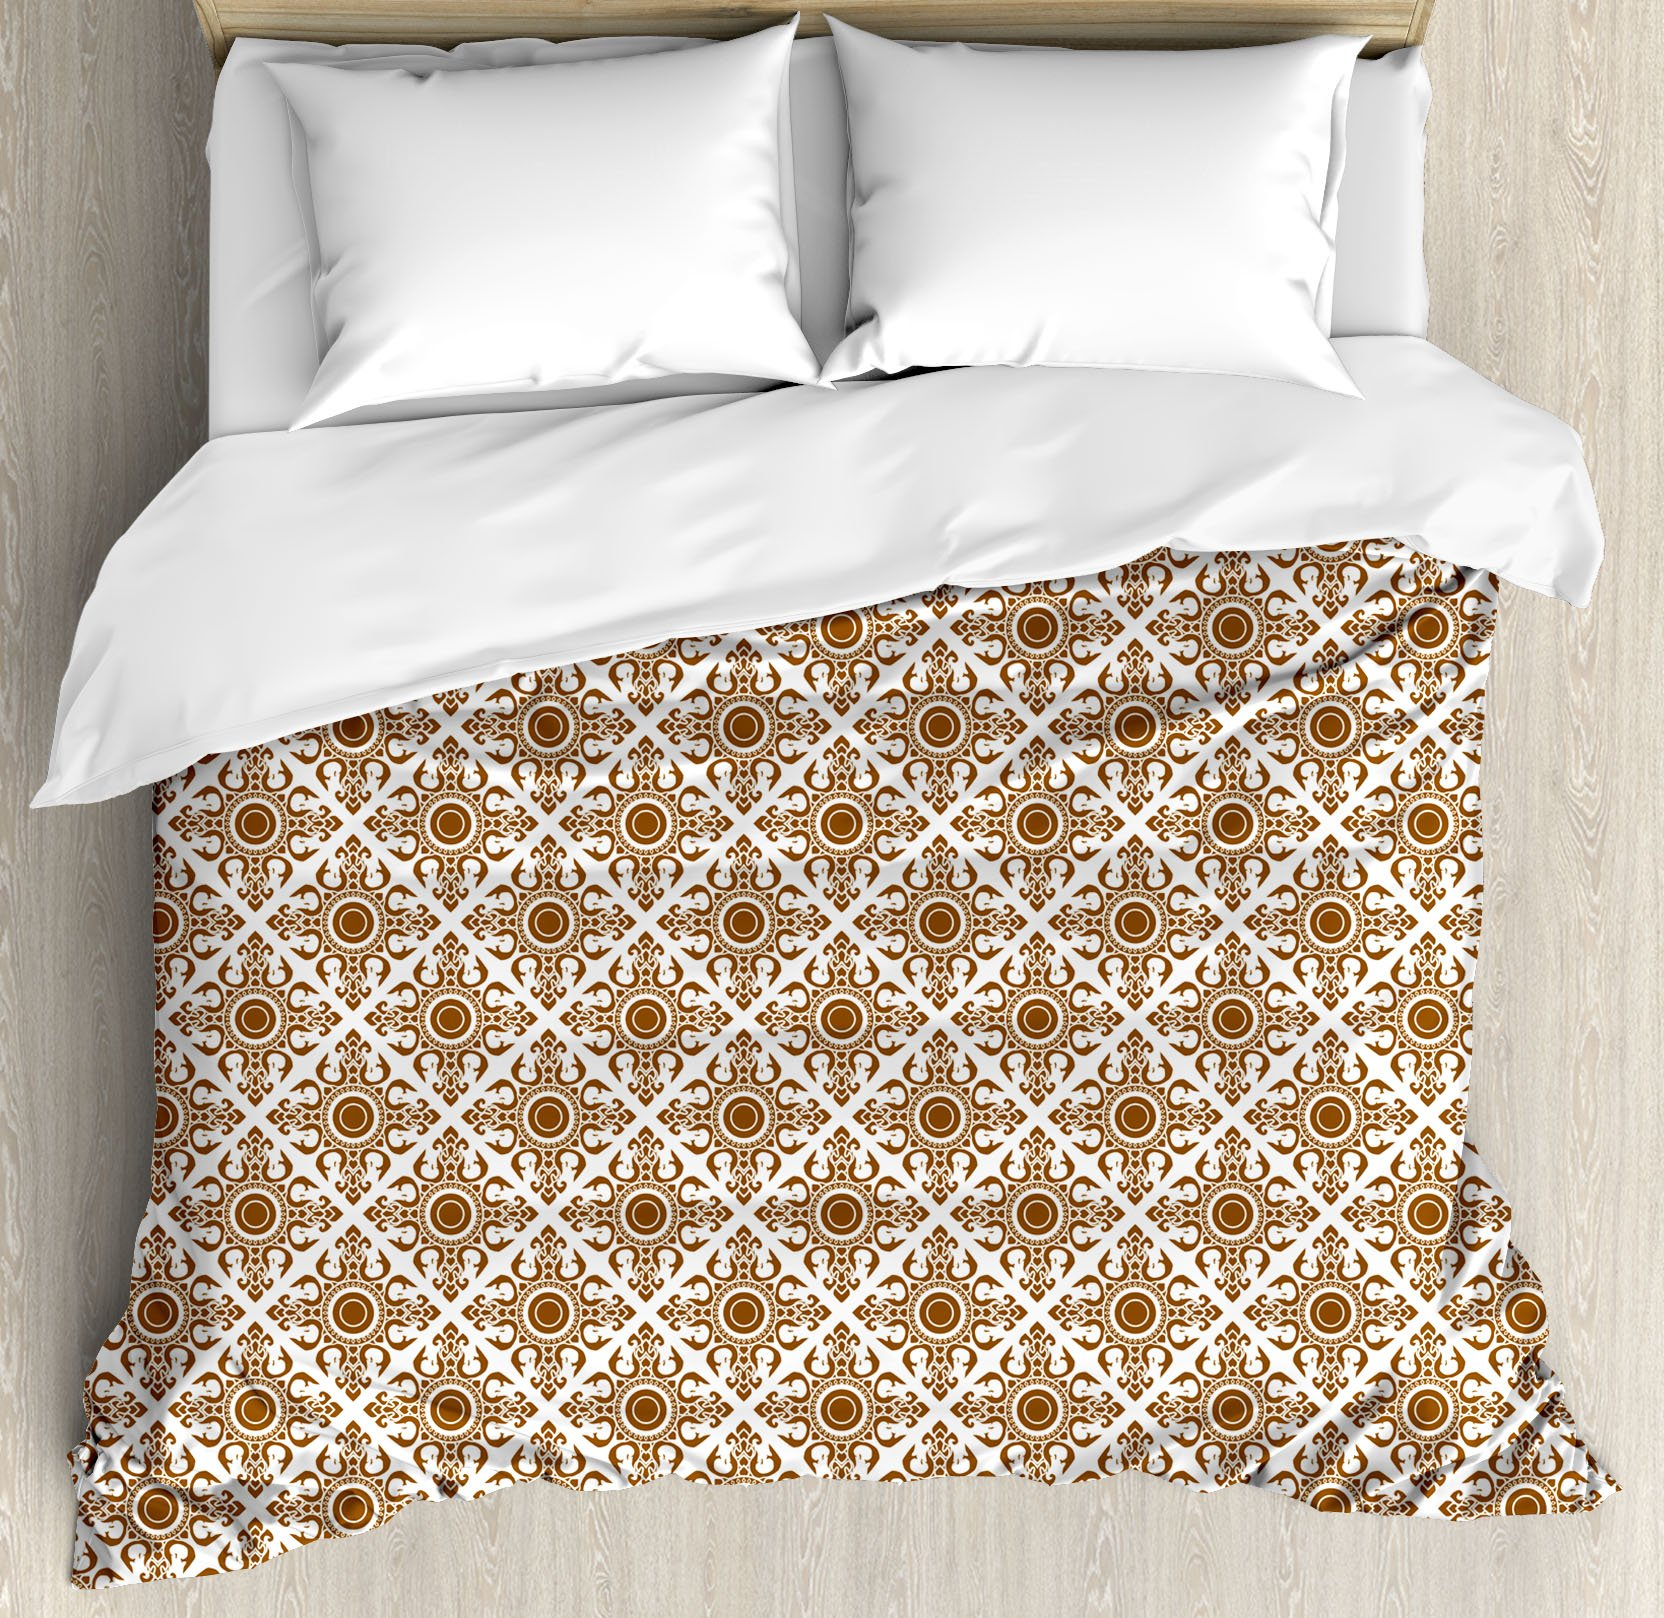 Ethnic Duvet Cover Set by Ambesonne, Thai Mosaic Art Culture Stylized Abstract Lines Dots Pattern Folk Asian Design, 3 Piece Bedding Set with Pillow Shams, Queen / Full, Redwood White by Ambesonne